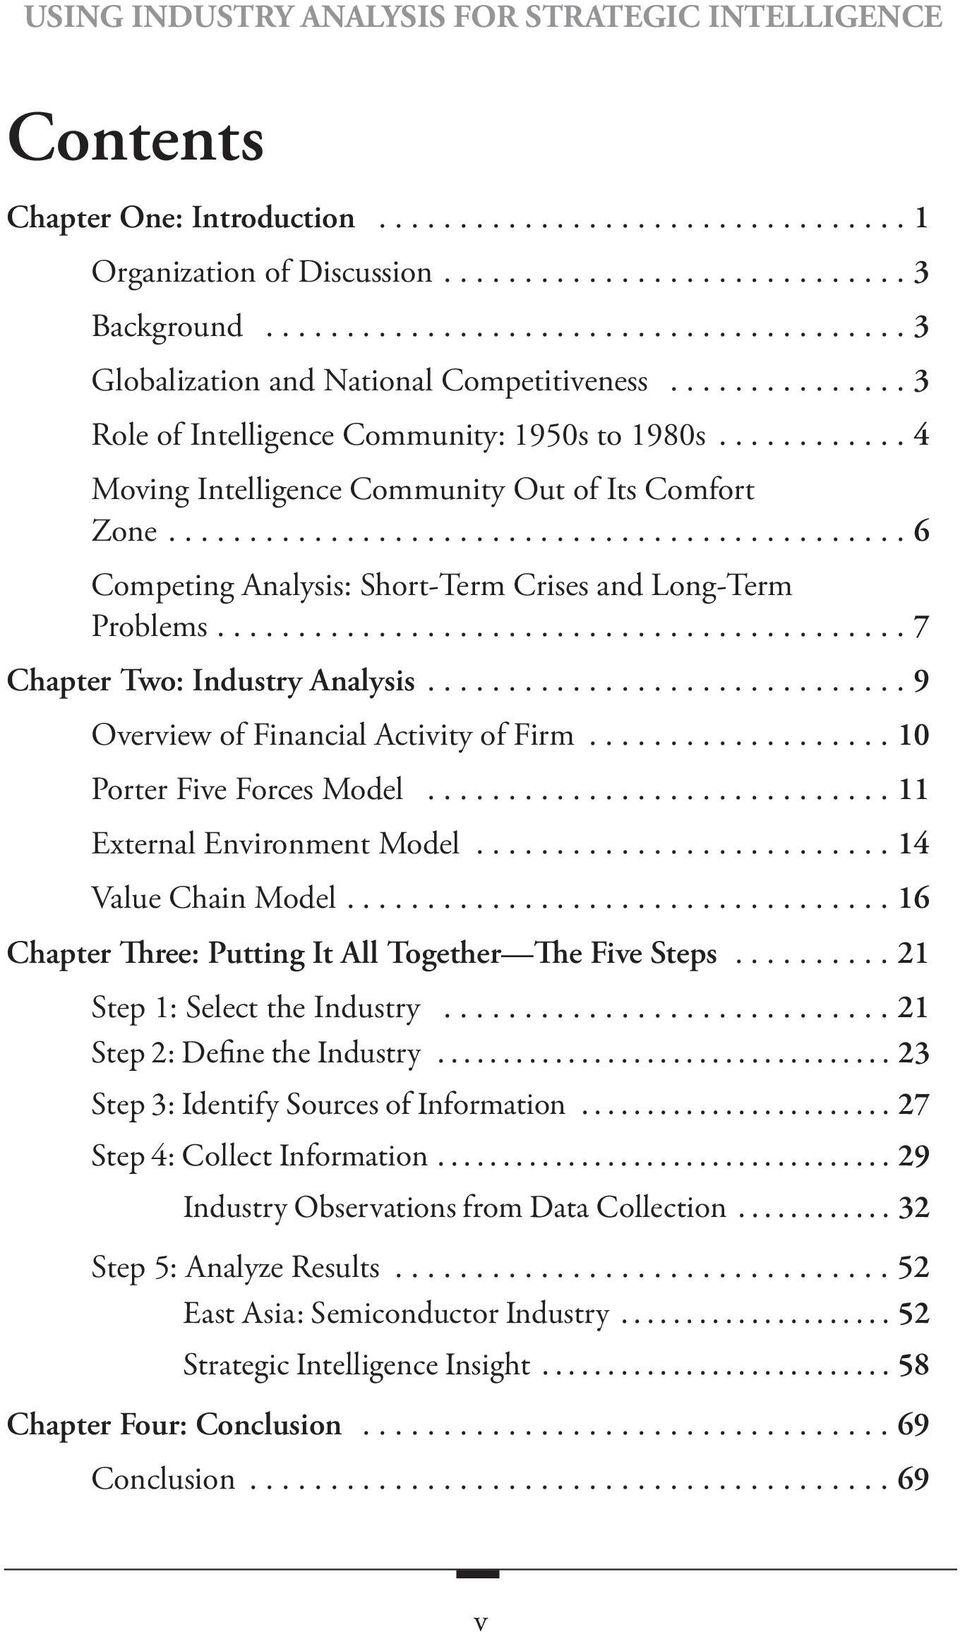 ...6 Competing Analysis: Short-Term Crises and Long-Term Problems....7 Chapter Two: Industry Analysis...9 Overview of Financial Activity of Firm...10 Porter Five Forces Model.